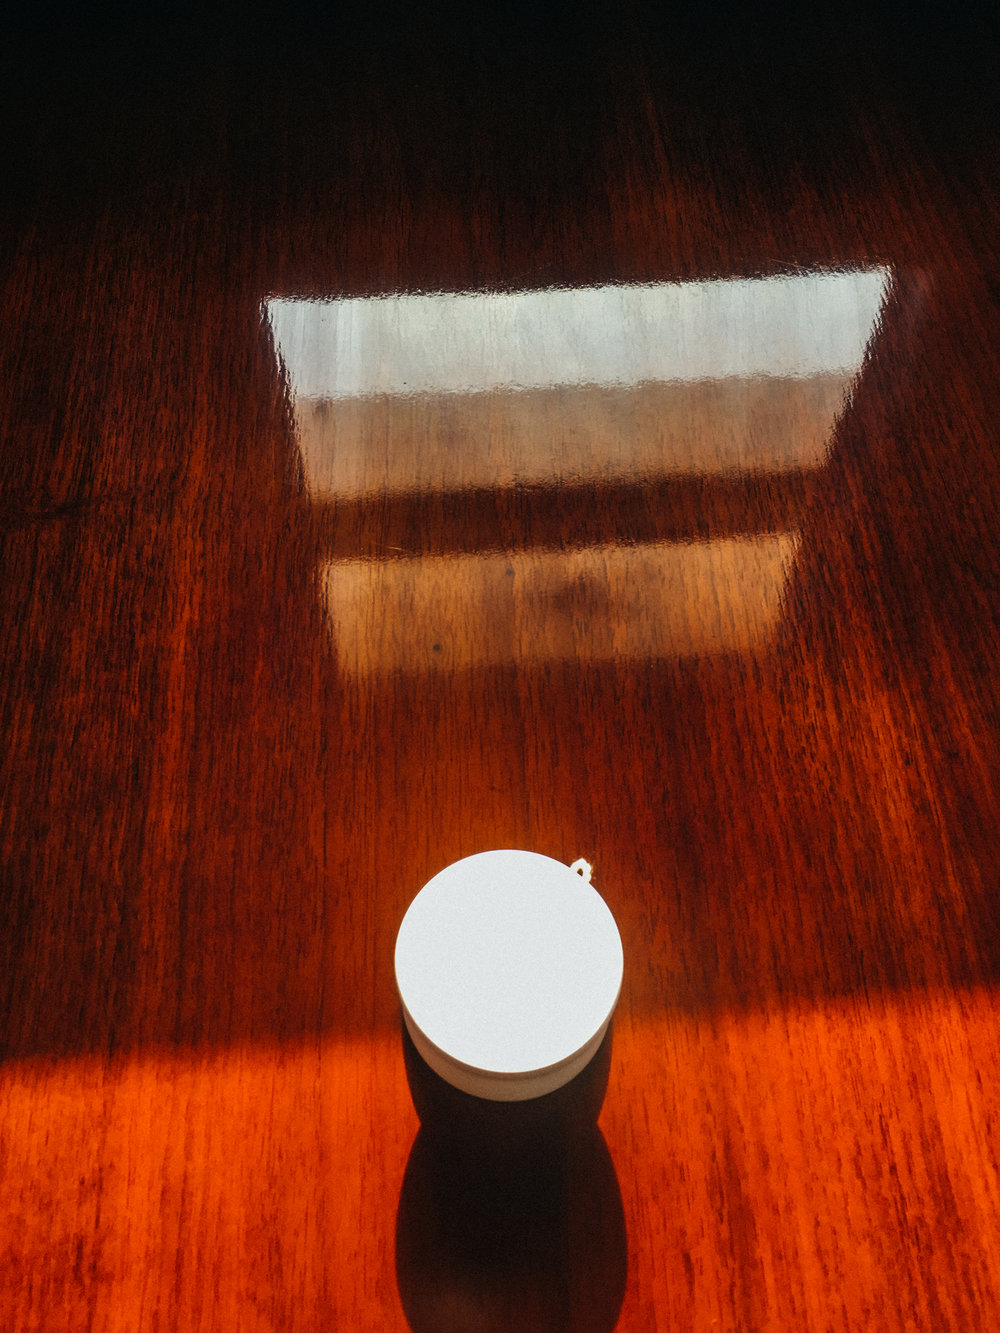 For a brief moment, this yoyo existed in both the south and the north. It sits atop the conference table which one day may be used to negotiate a permanent resolution to the conflict on the Korean peninsula.